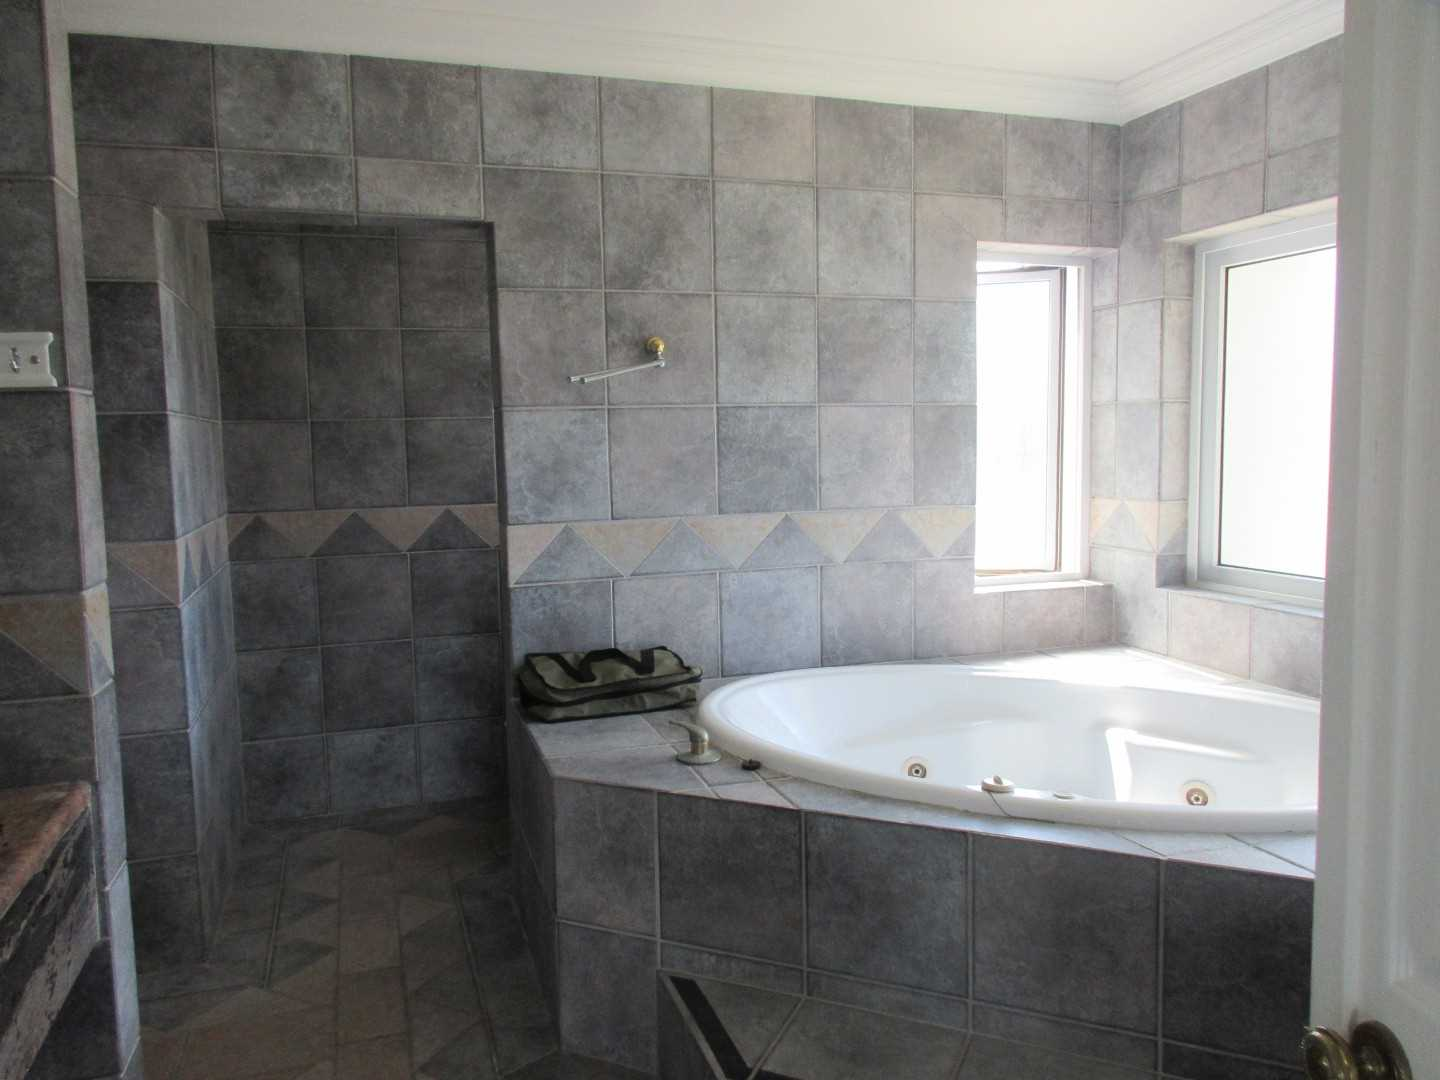 Master en-suite bathroom with spa bath, shower, toilet and basins